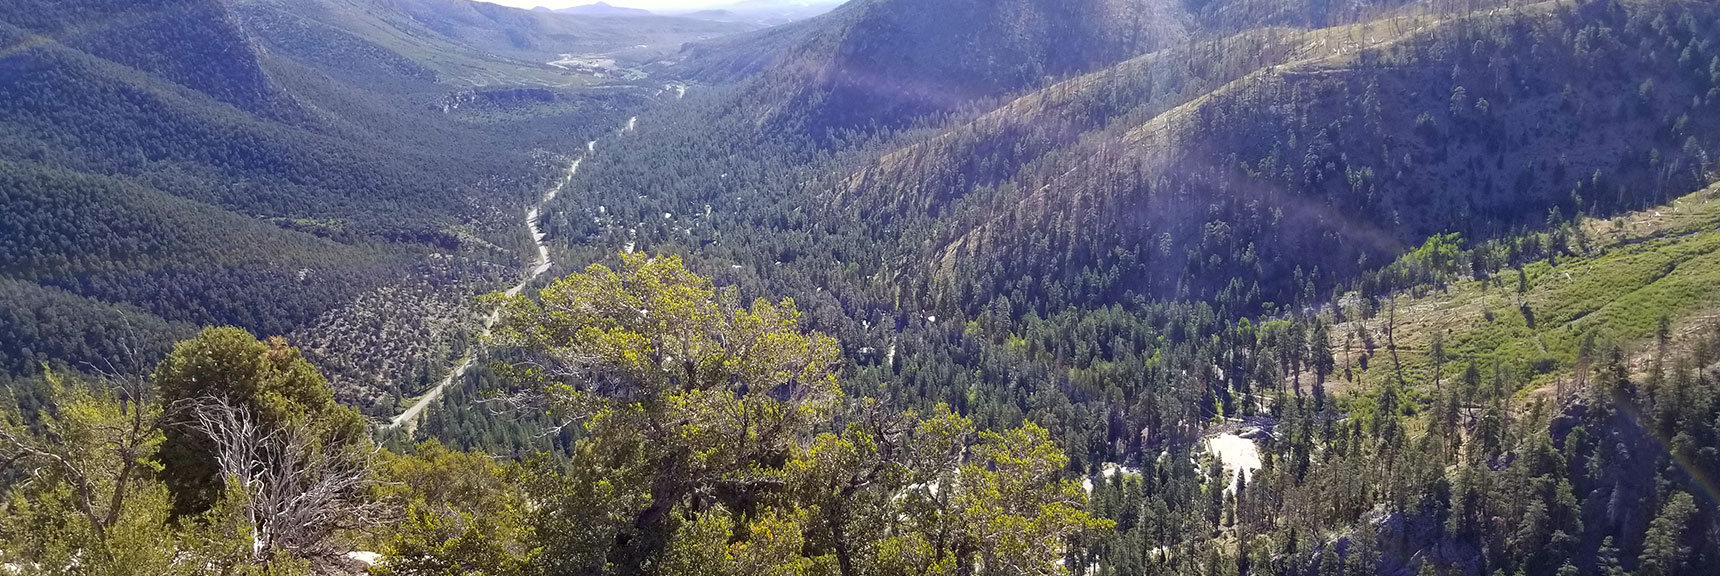 View Down Kyle Canyon from Cathedral Rock Summit, Mt. Charleston Wilderness, Nevada